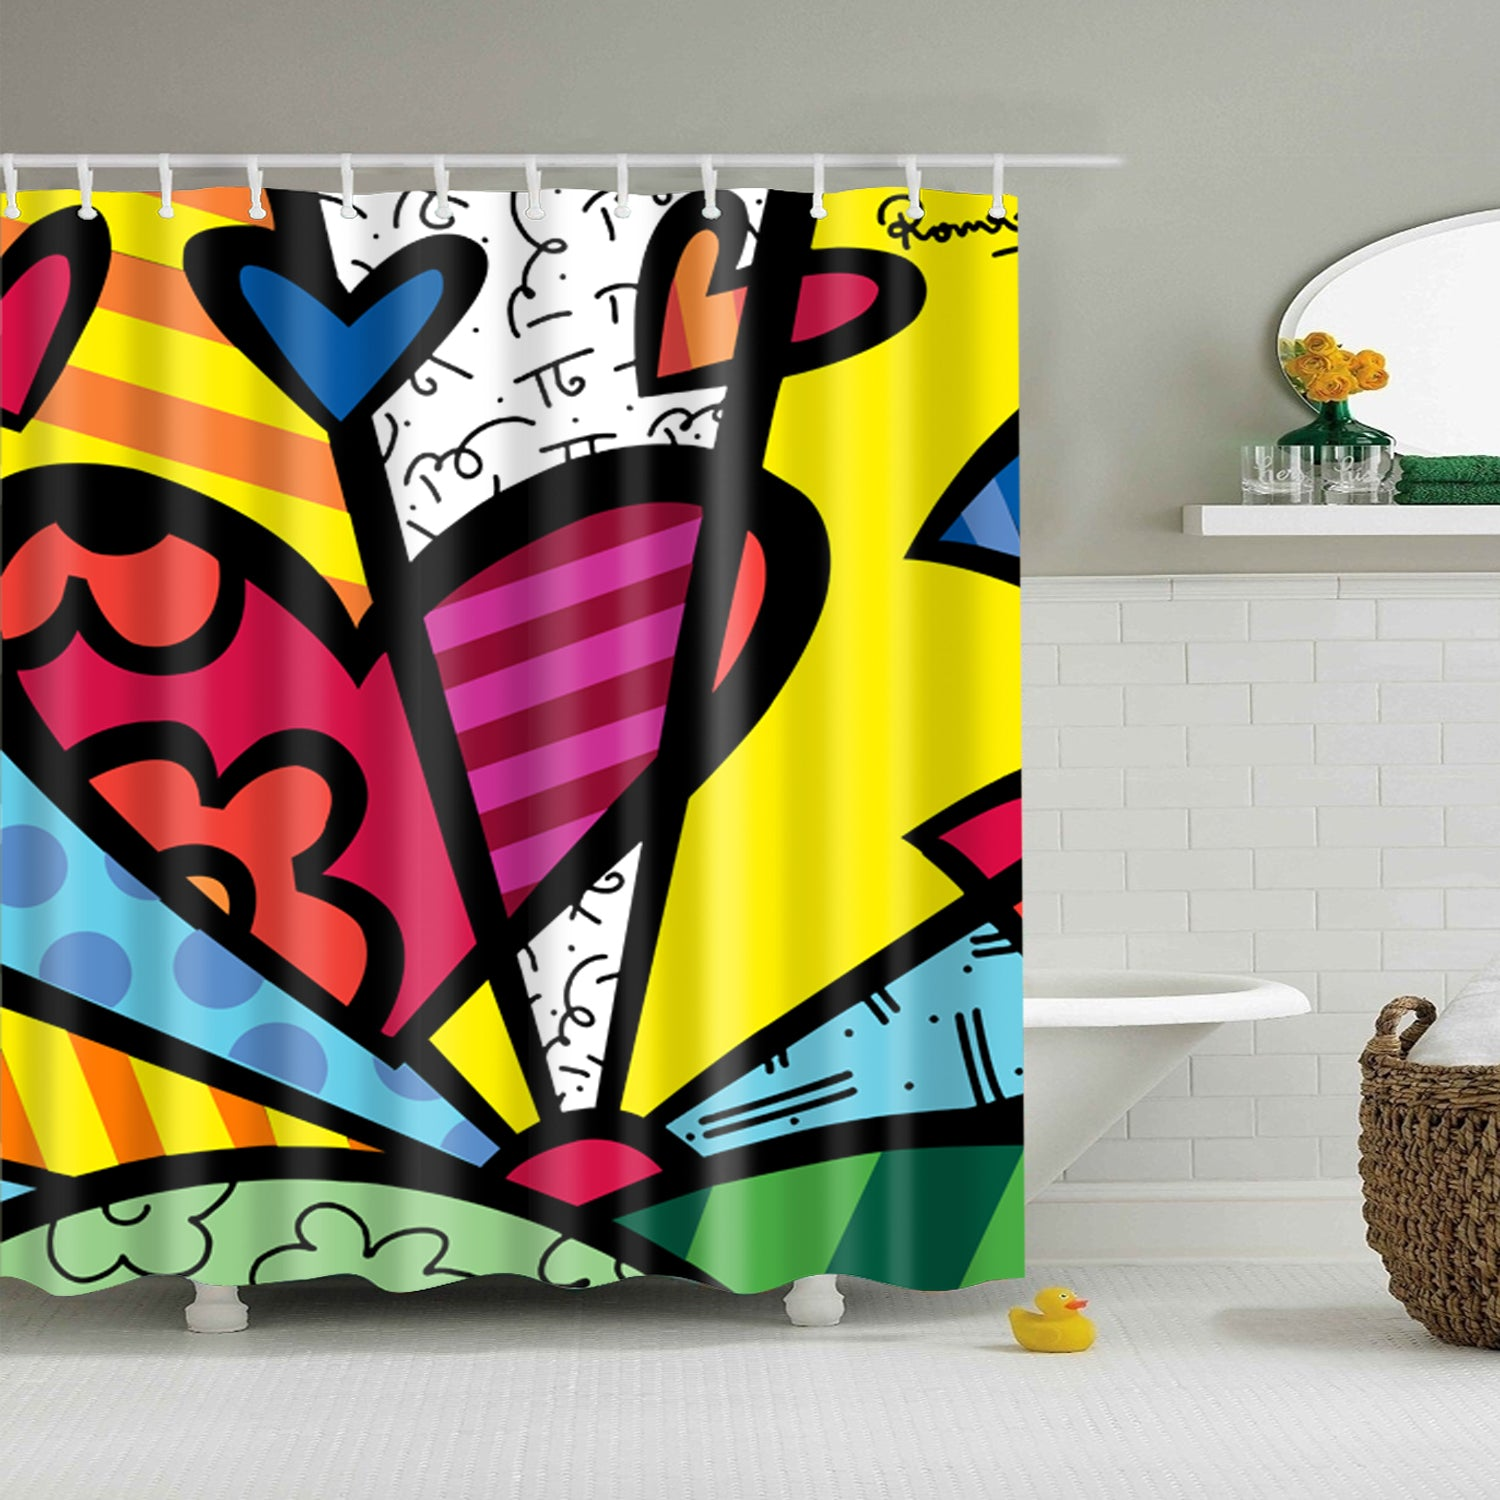 Romero Britto A New Day Find Inspiration Shower Curtain